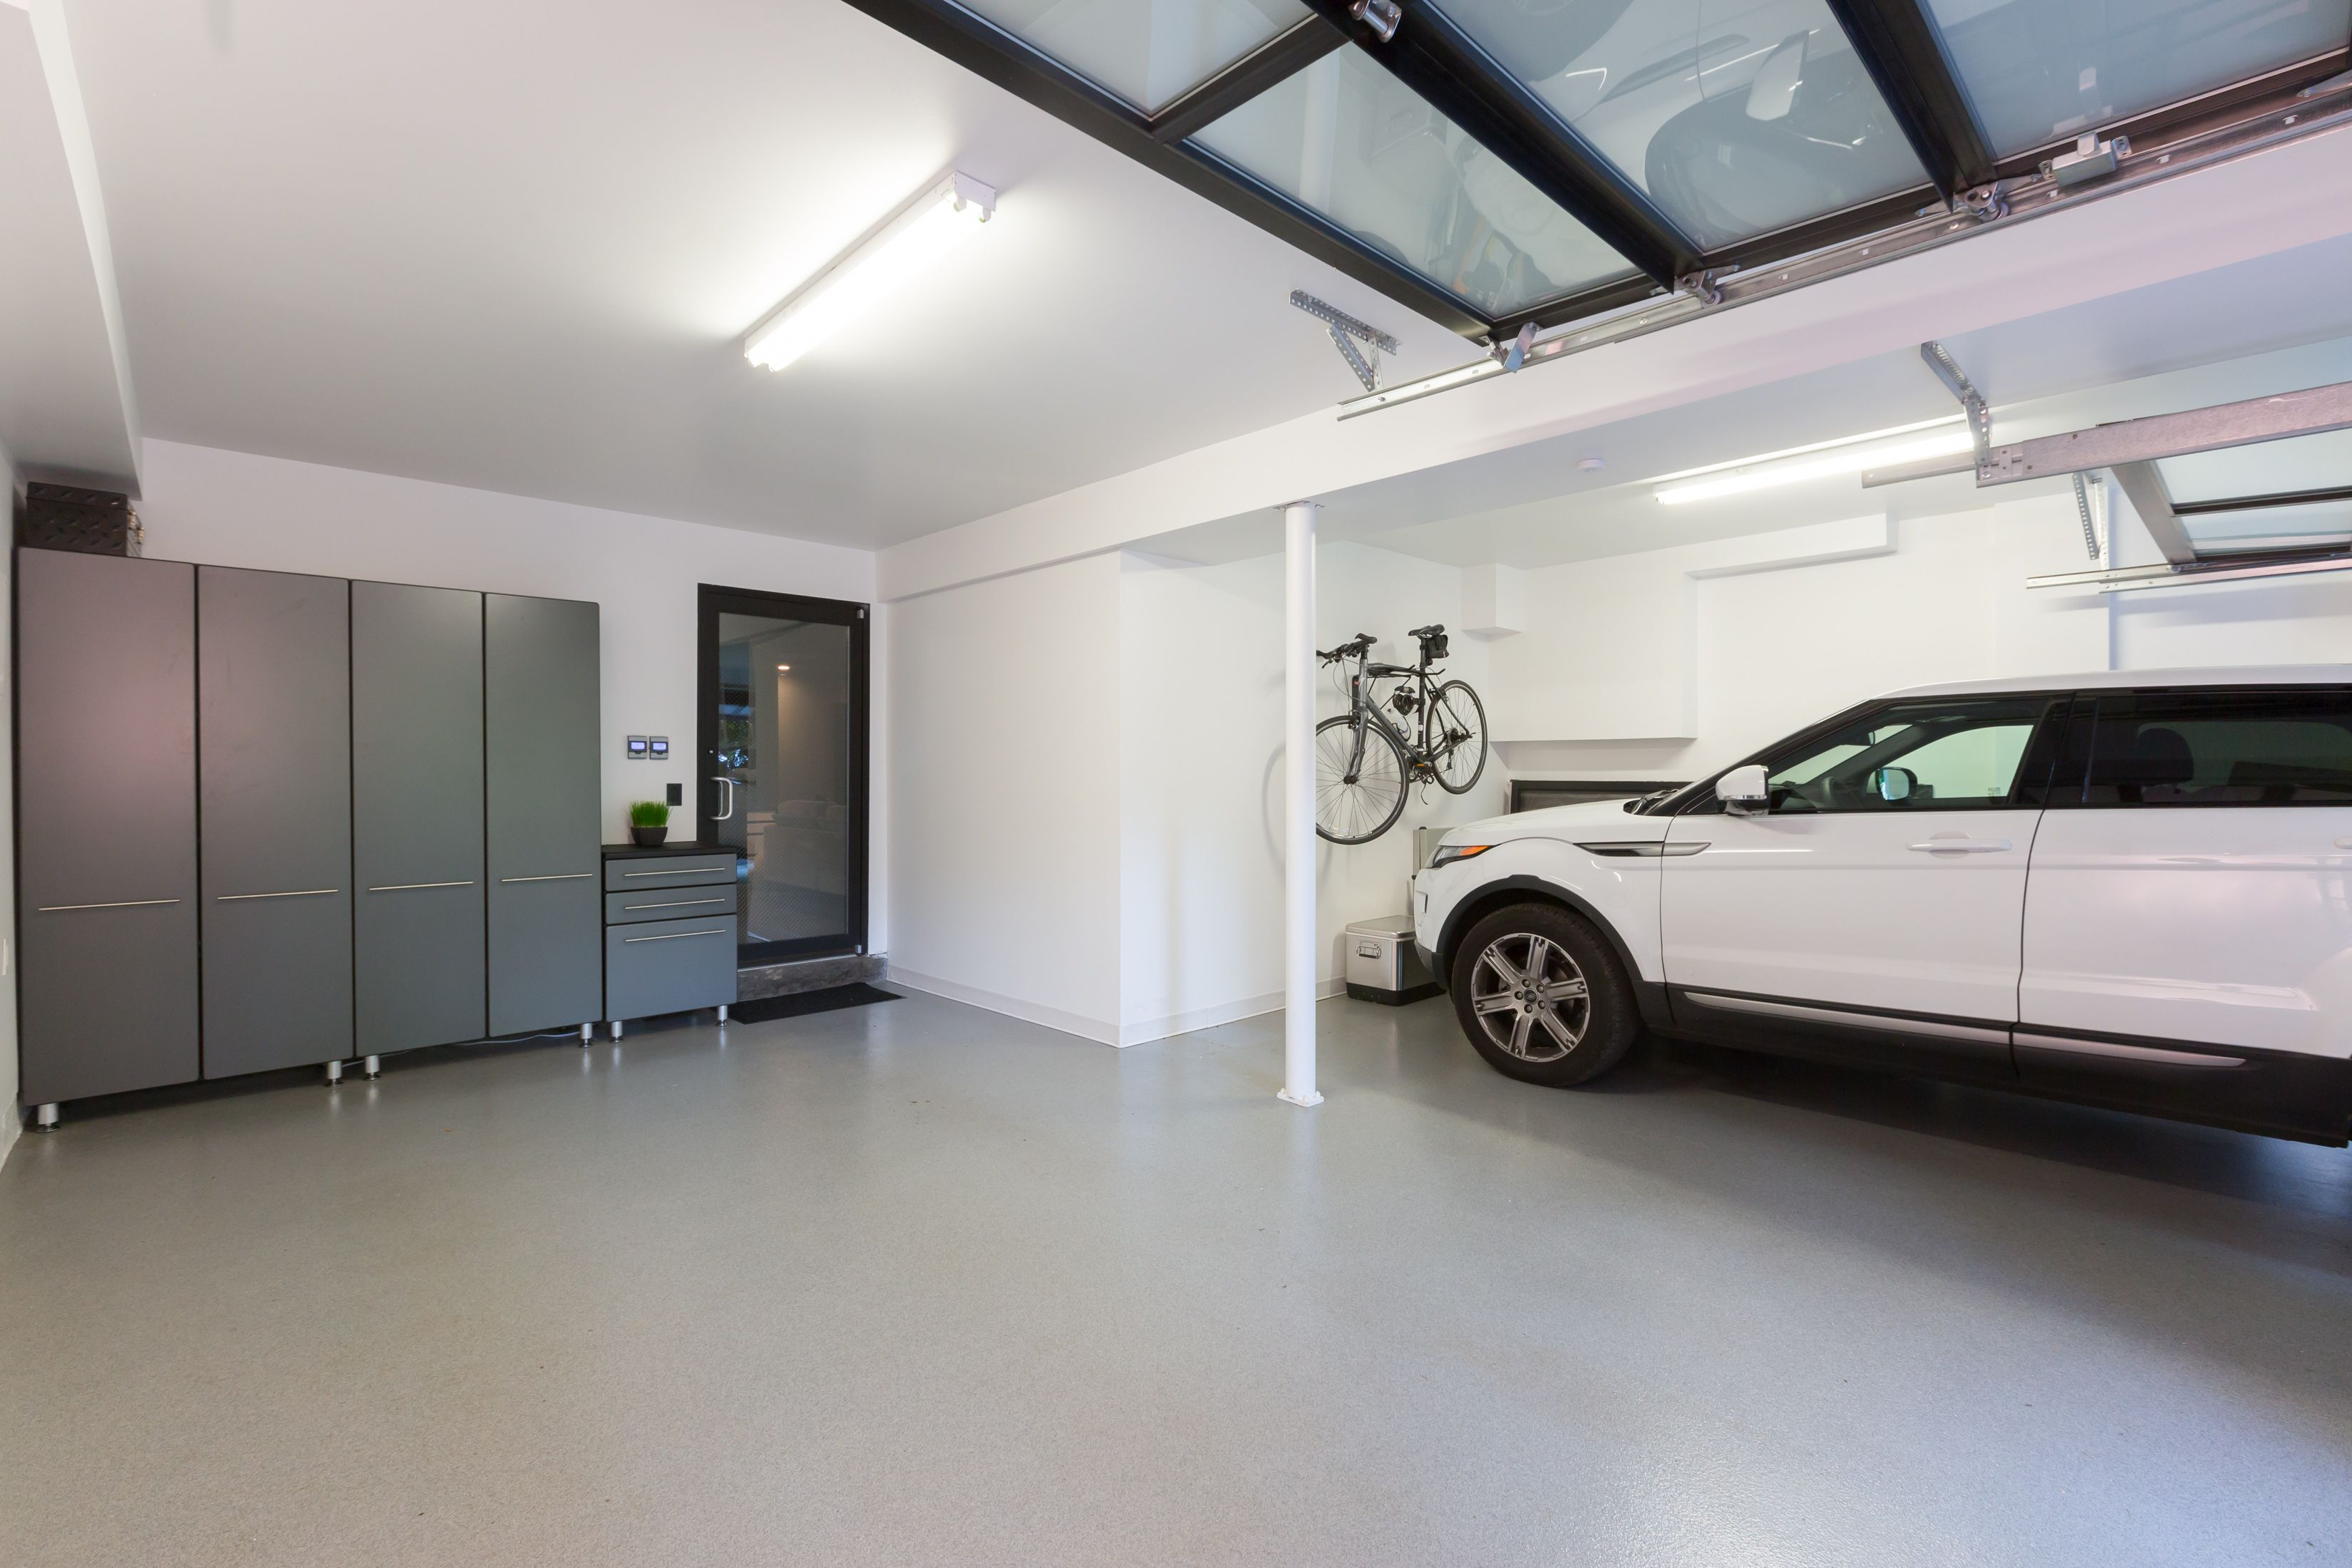 standard door car two g tumblr ideas trj home awesome garage x design size